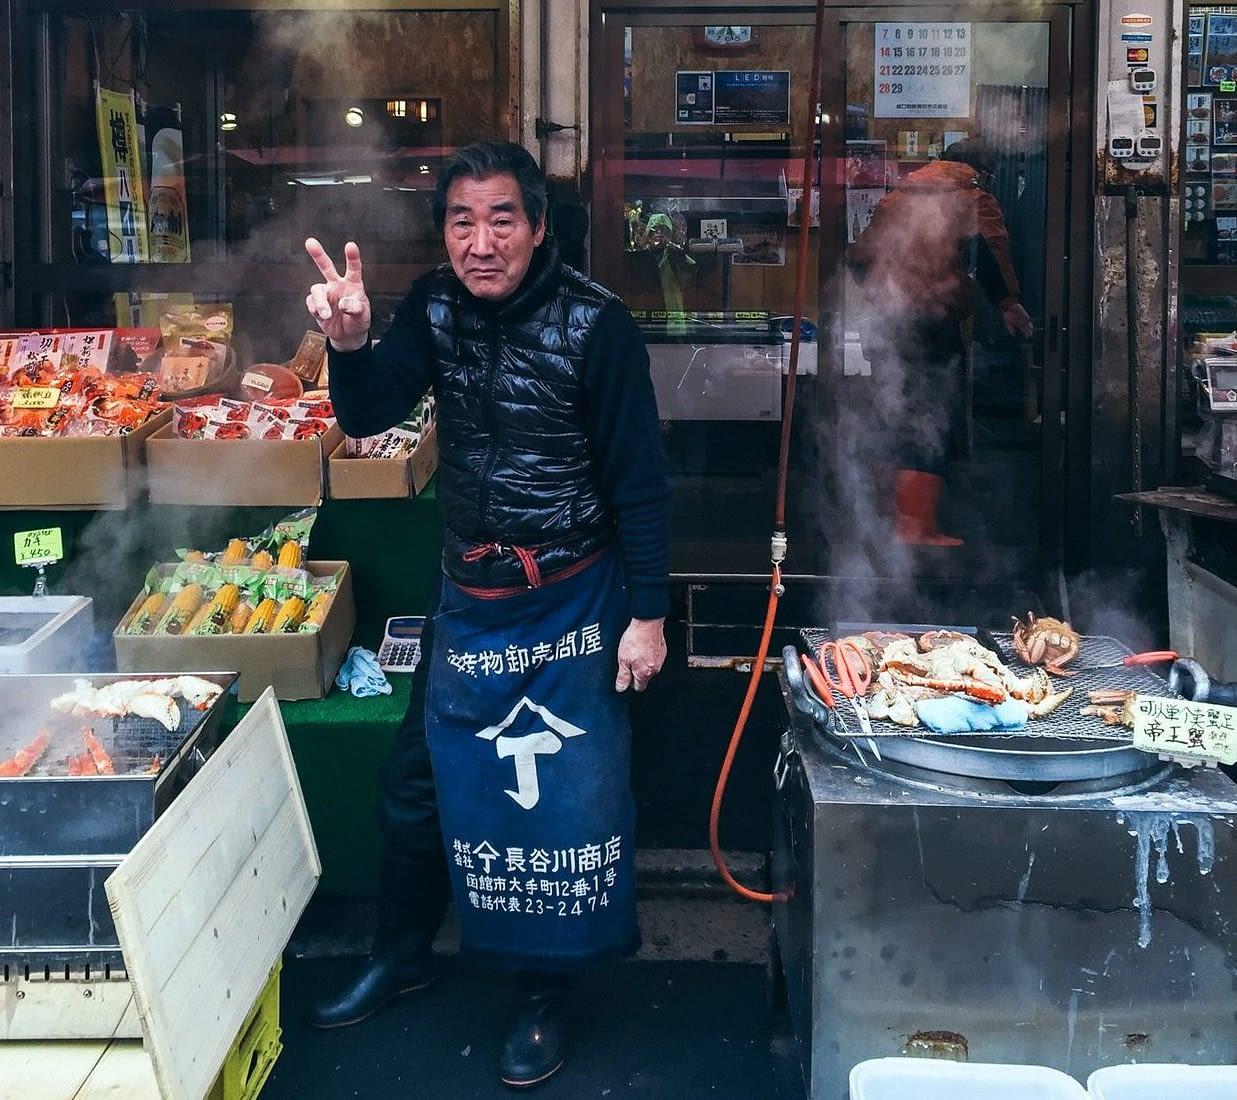 A friendly stall owner posing for my camera